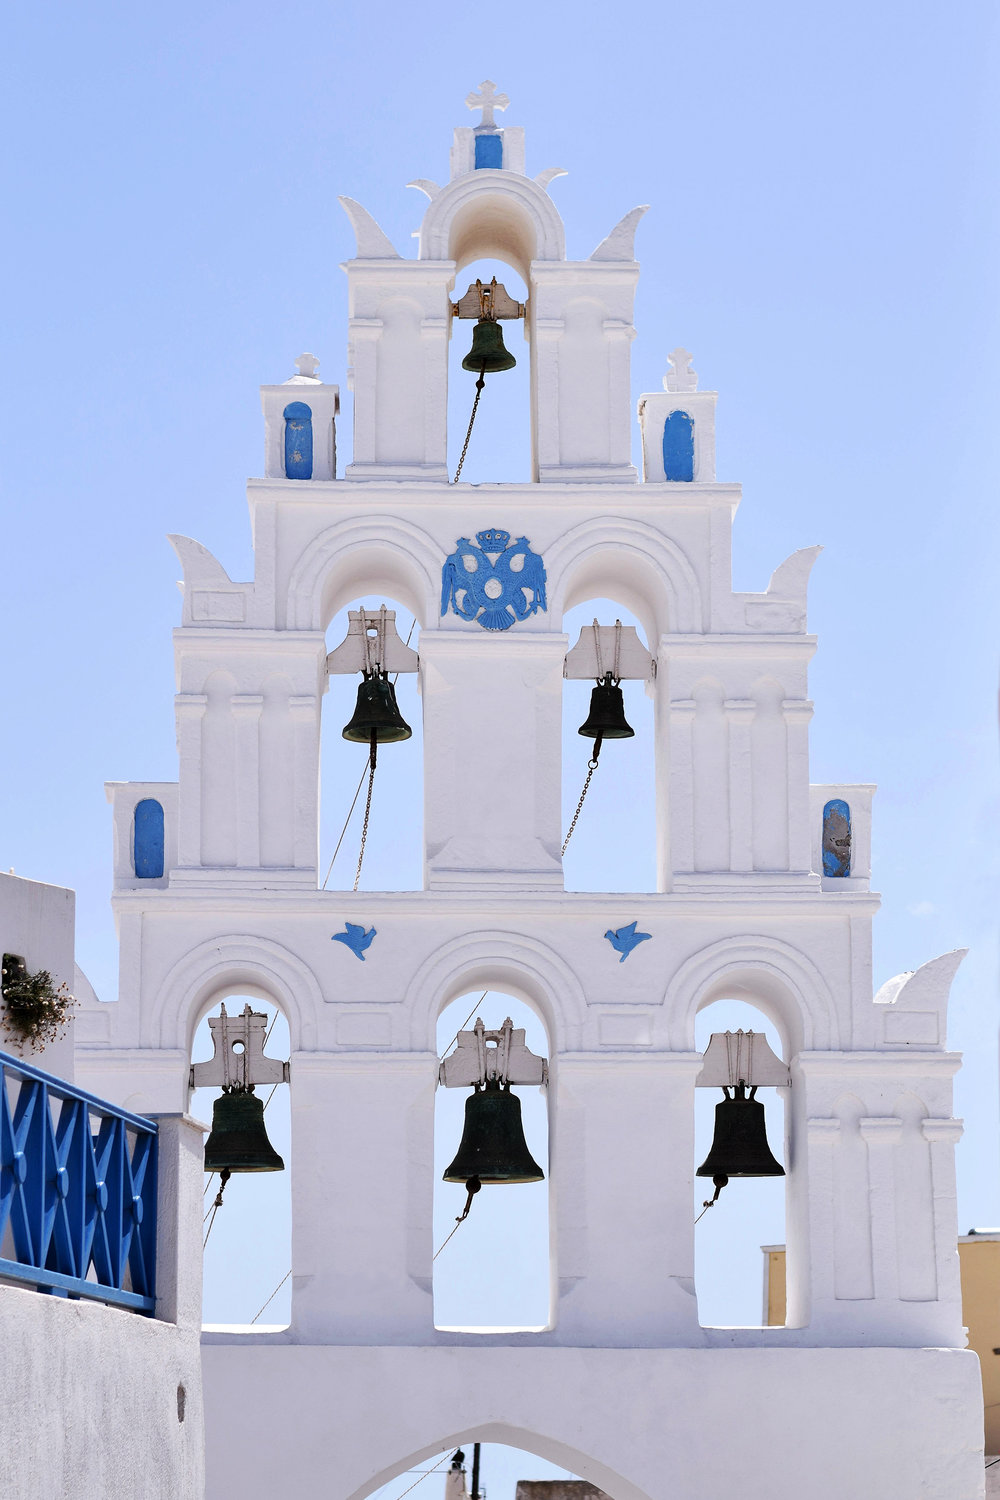 The bell tower in Megalochori, Santorini